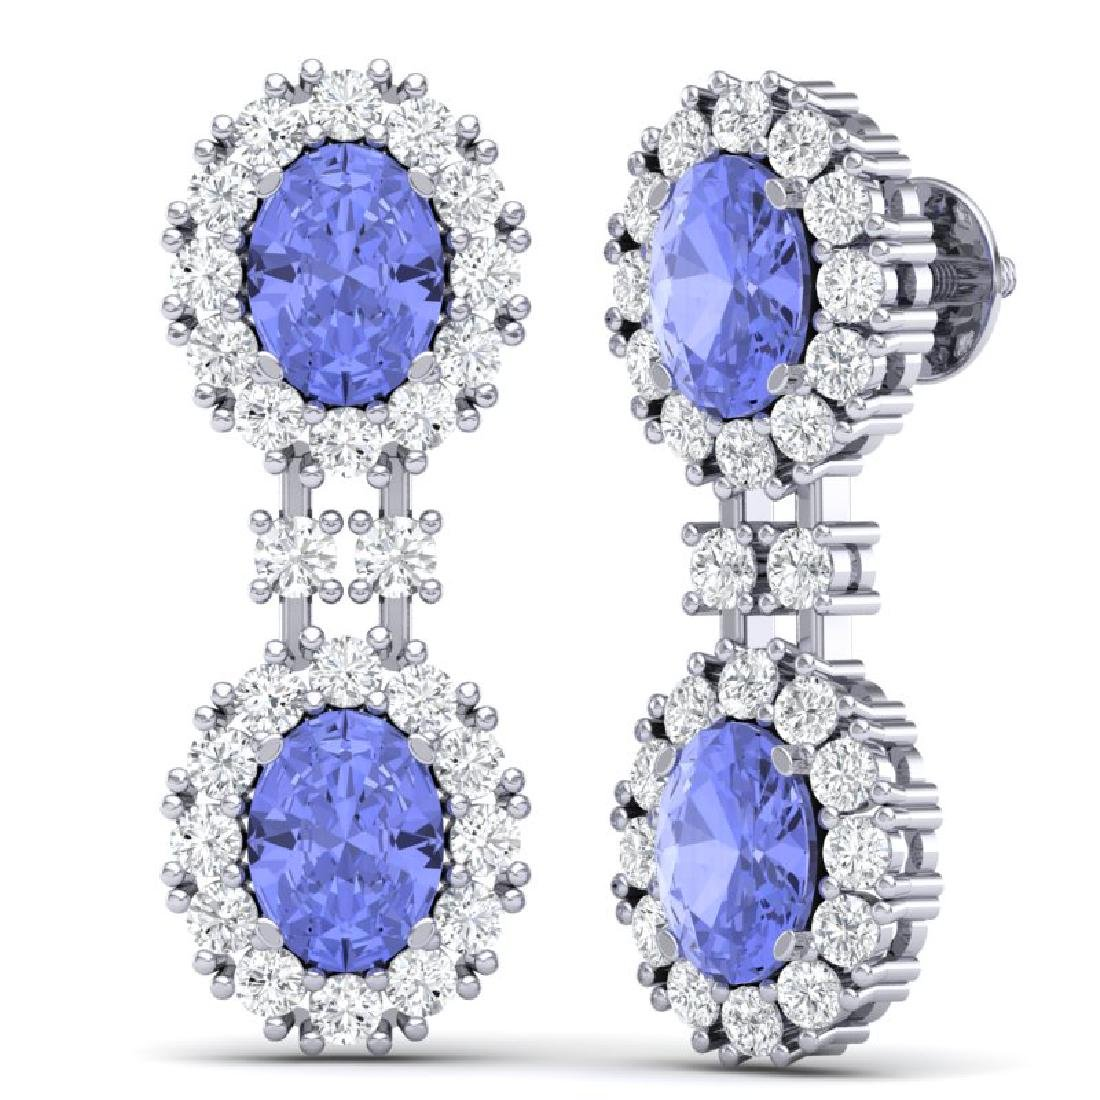 8.35 CTW Royalty Tanzanite & VS Diamond Earrings 18K - 3